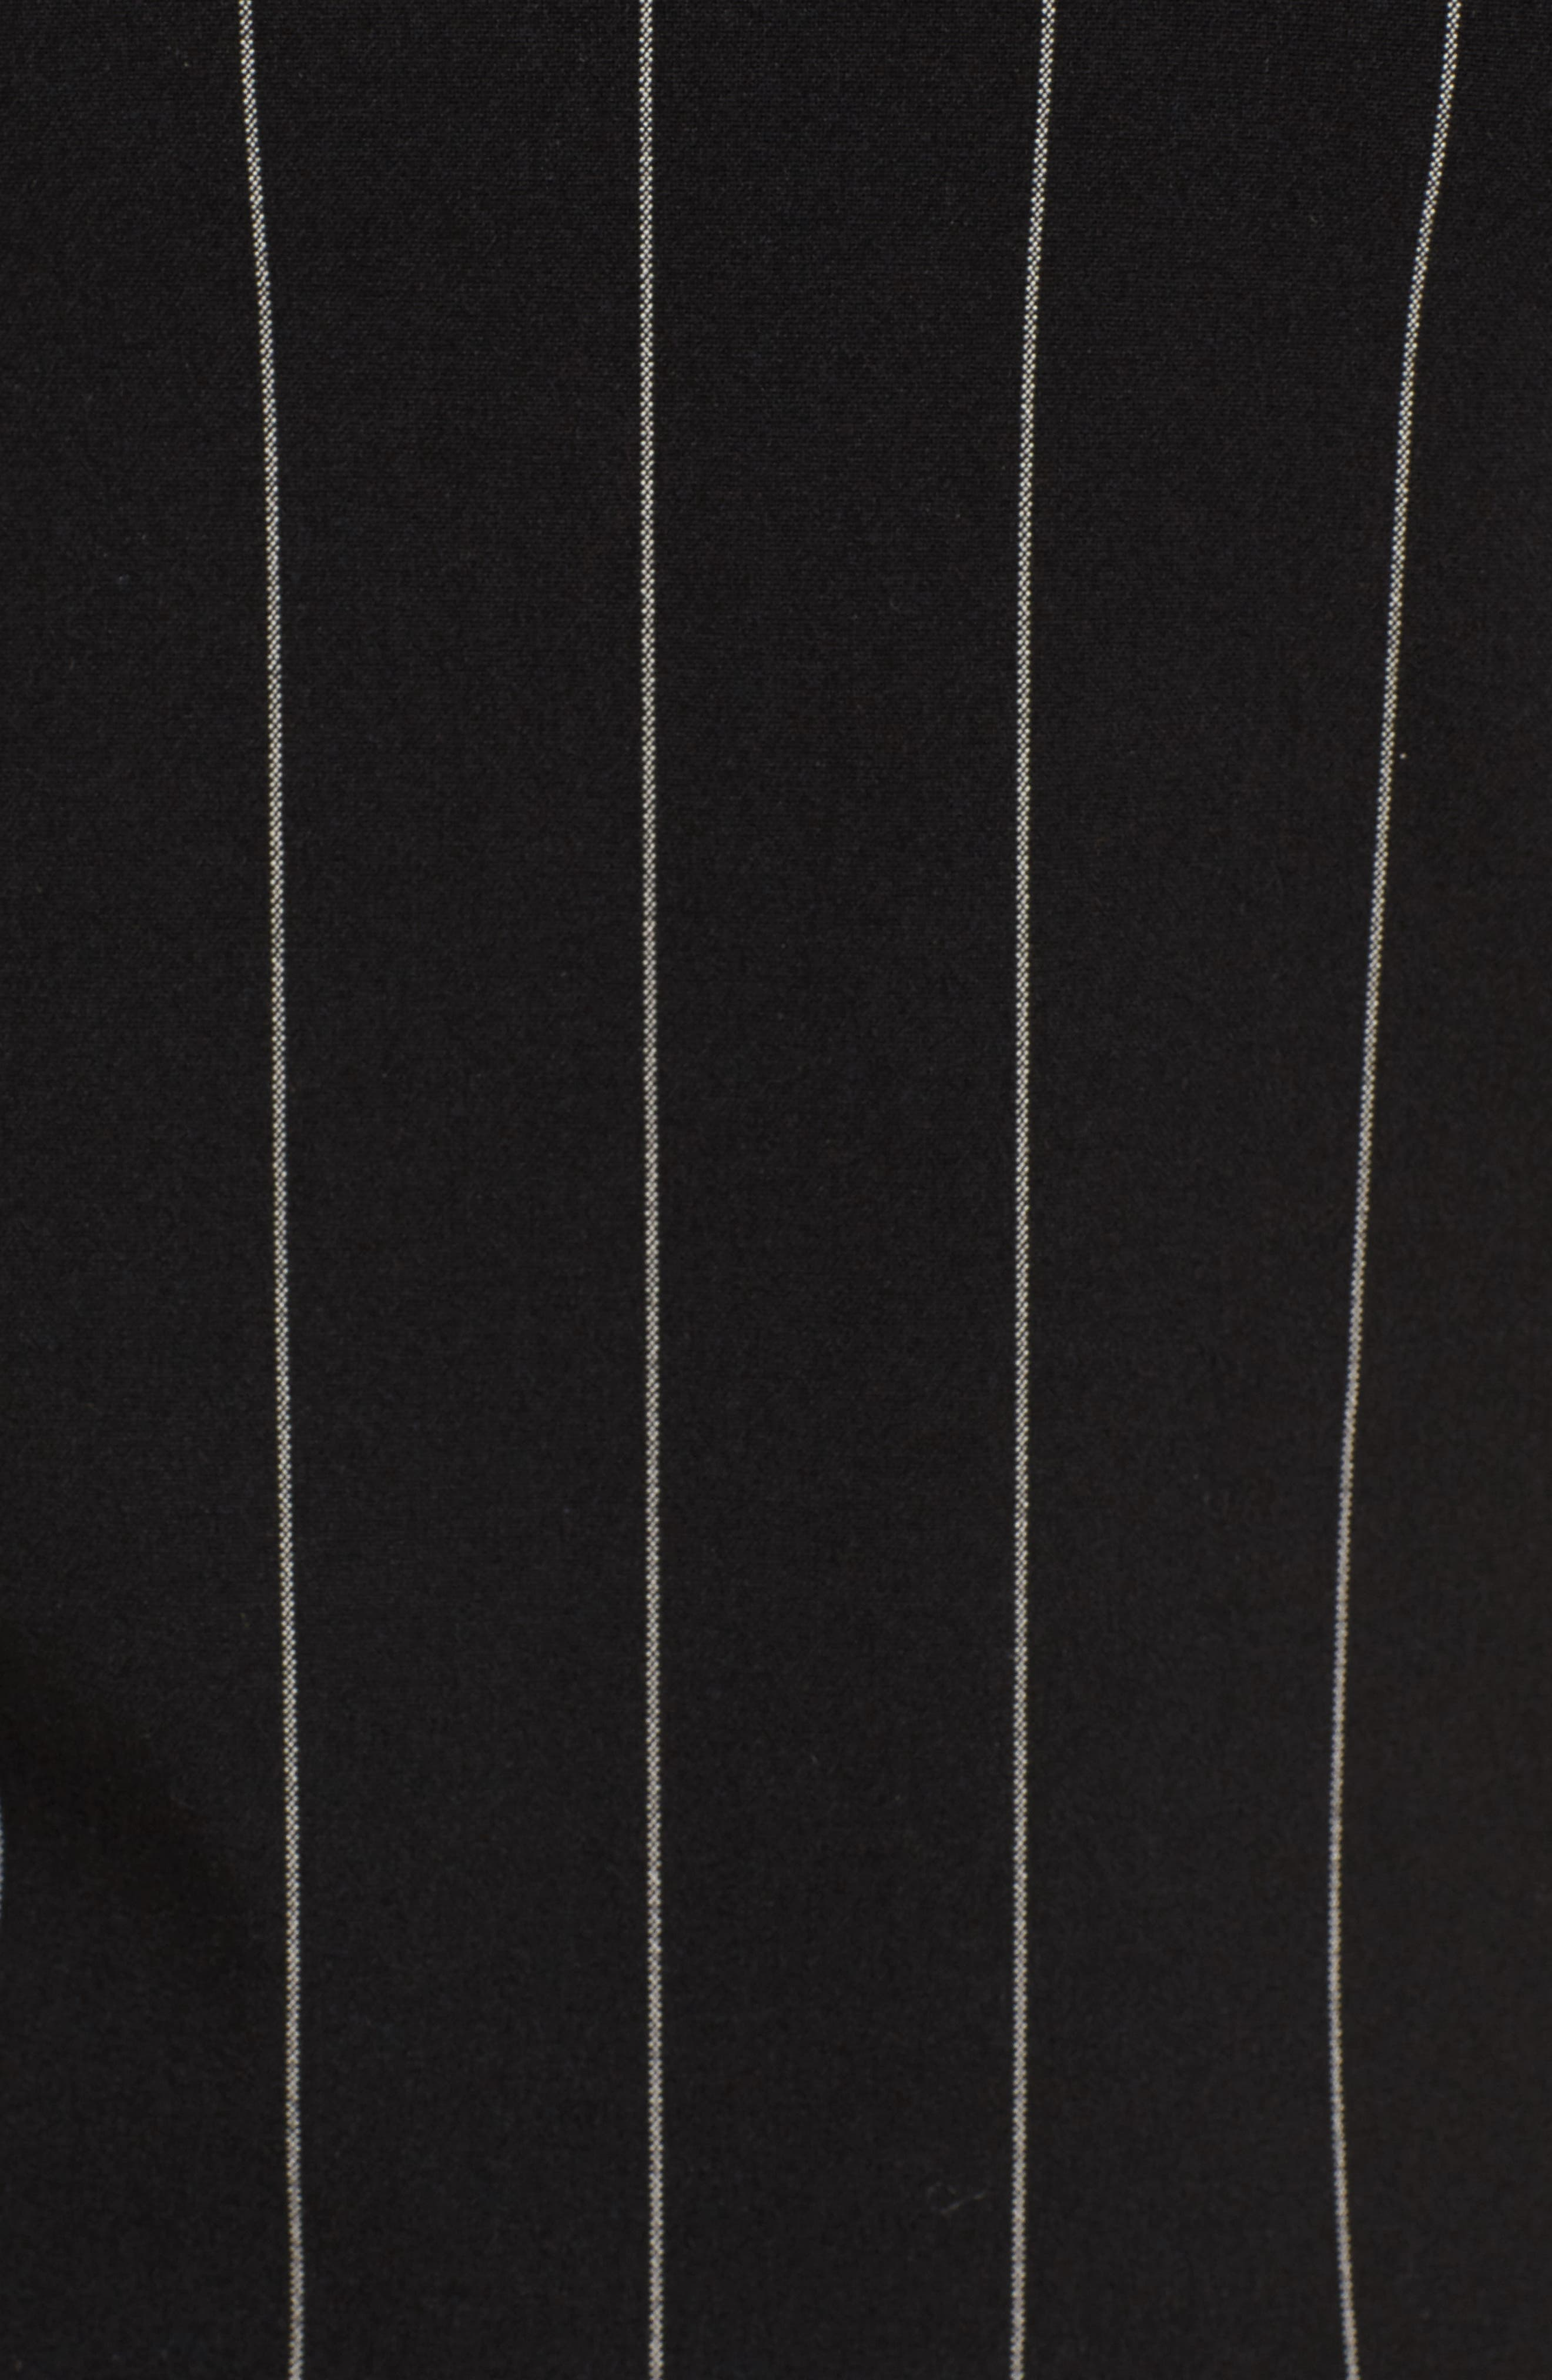 Pinstripe Blouse,                             Alternate thumbnail 5, color,                             001